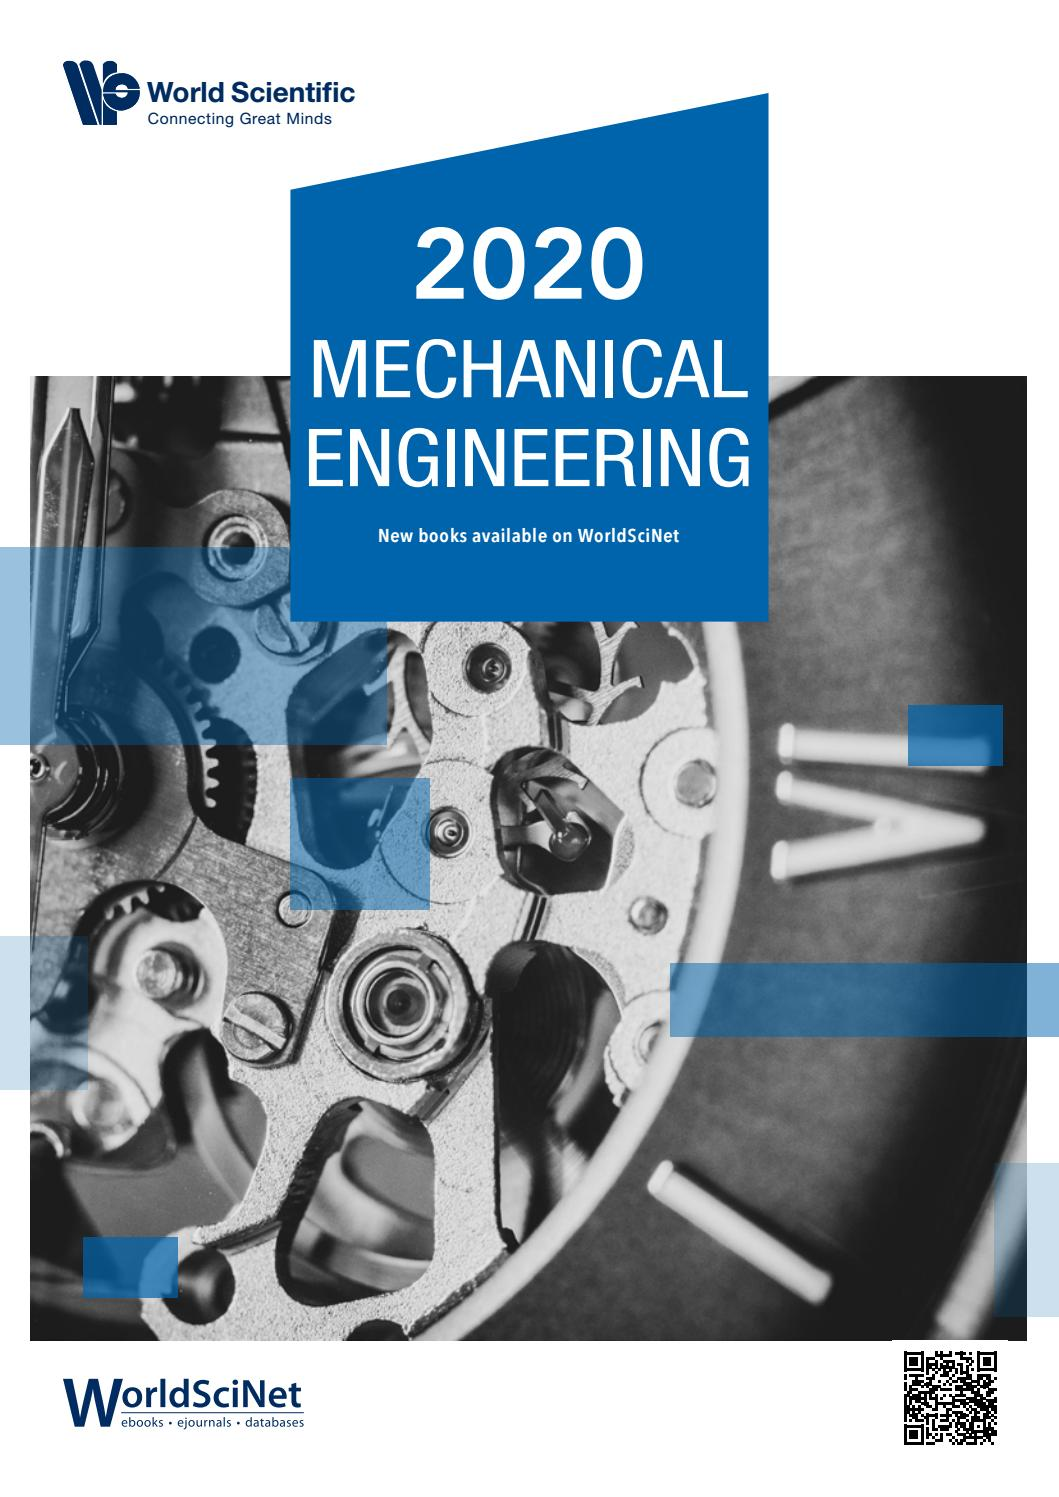 World Scientific Publishers 2020 Mechanical Engineering By Kemper Conseil Publishing Issuu